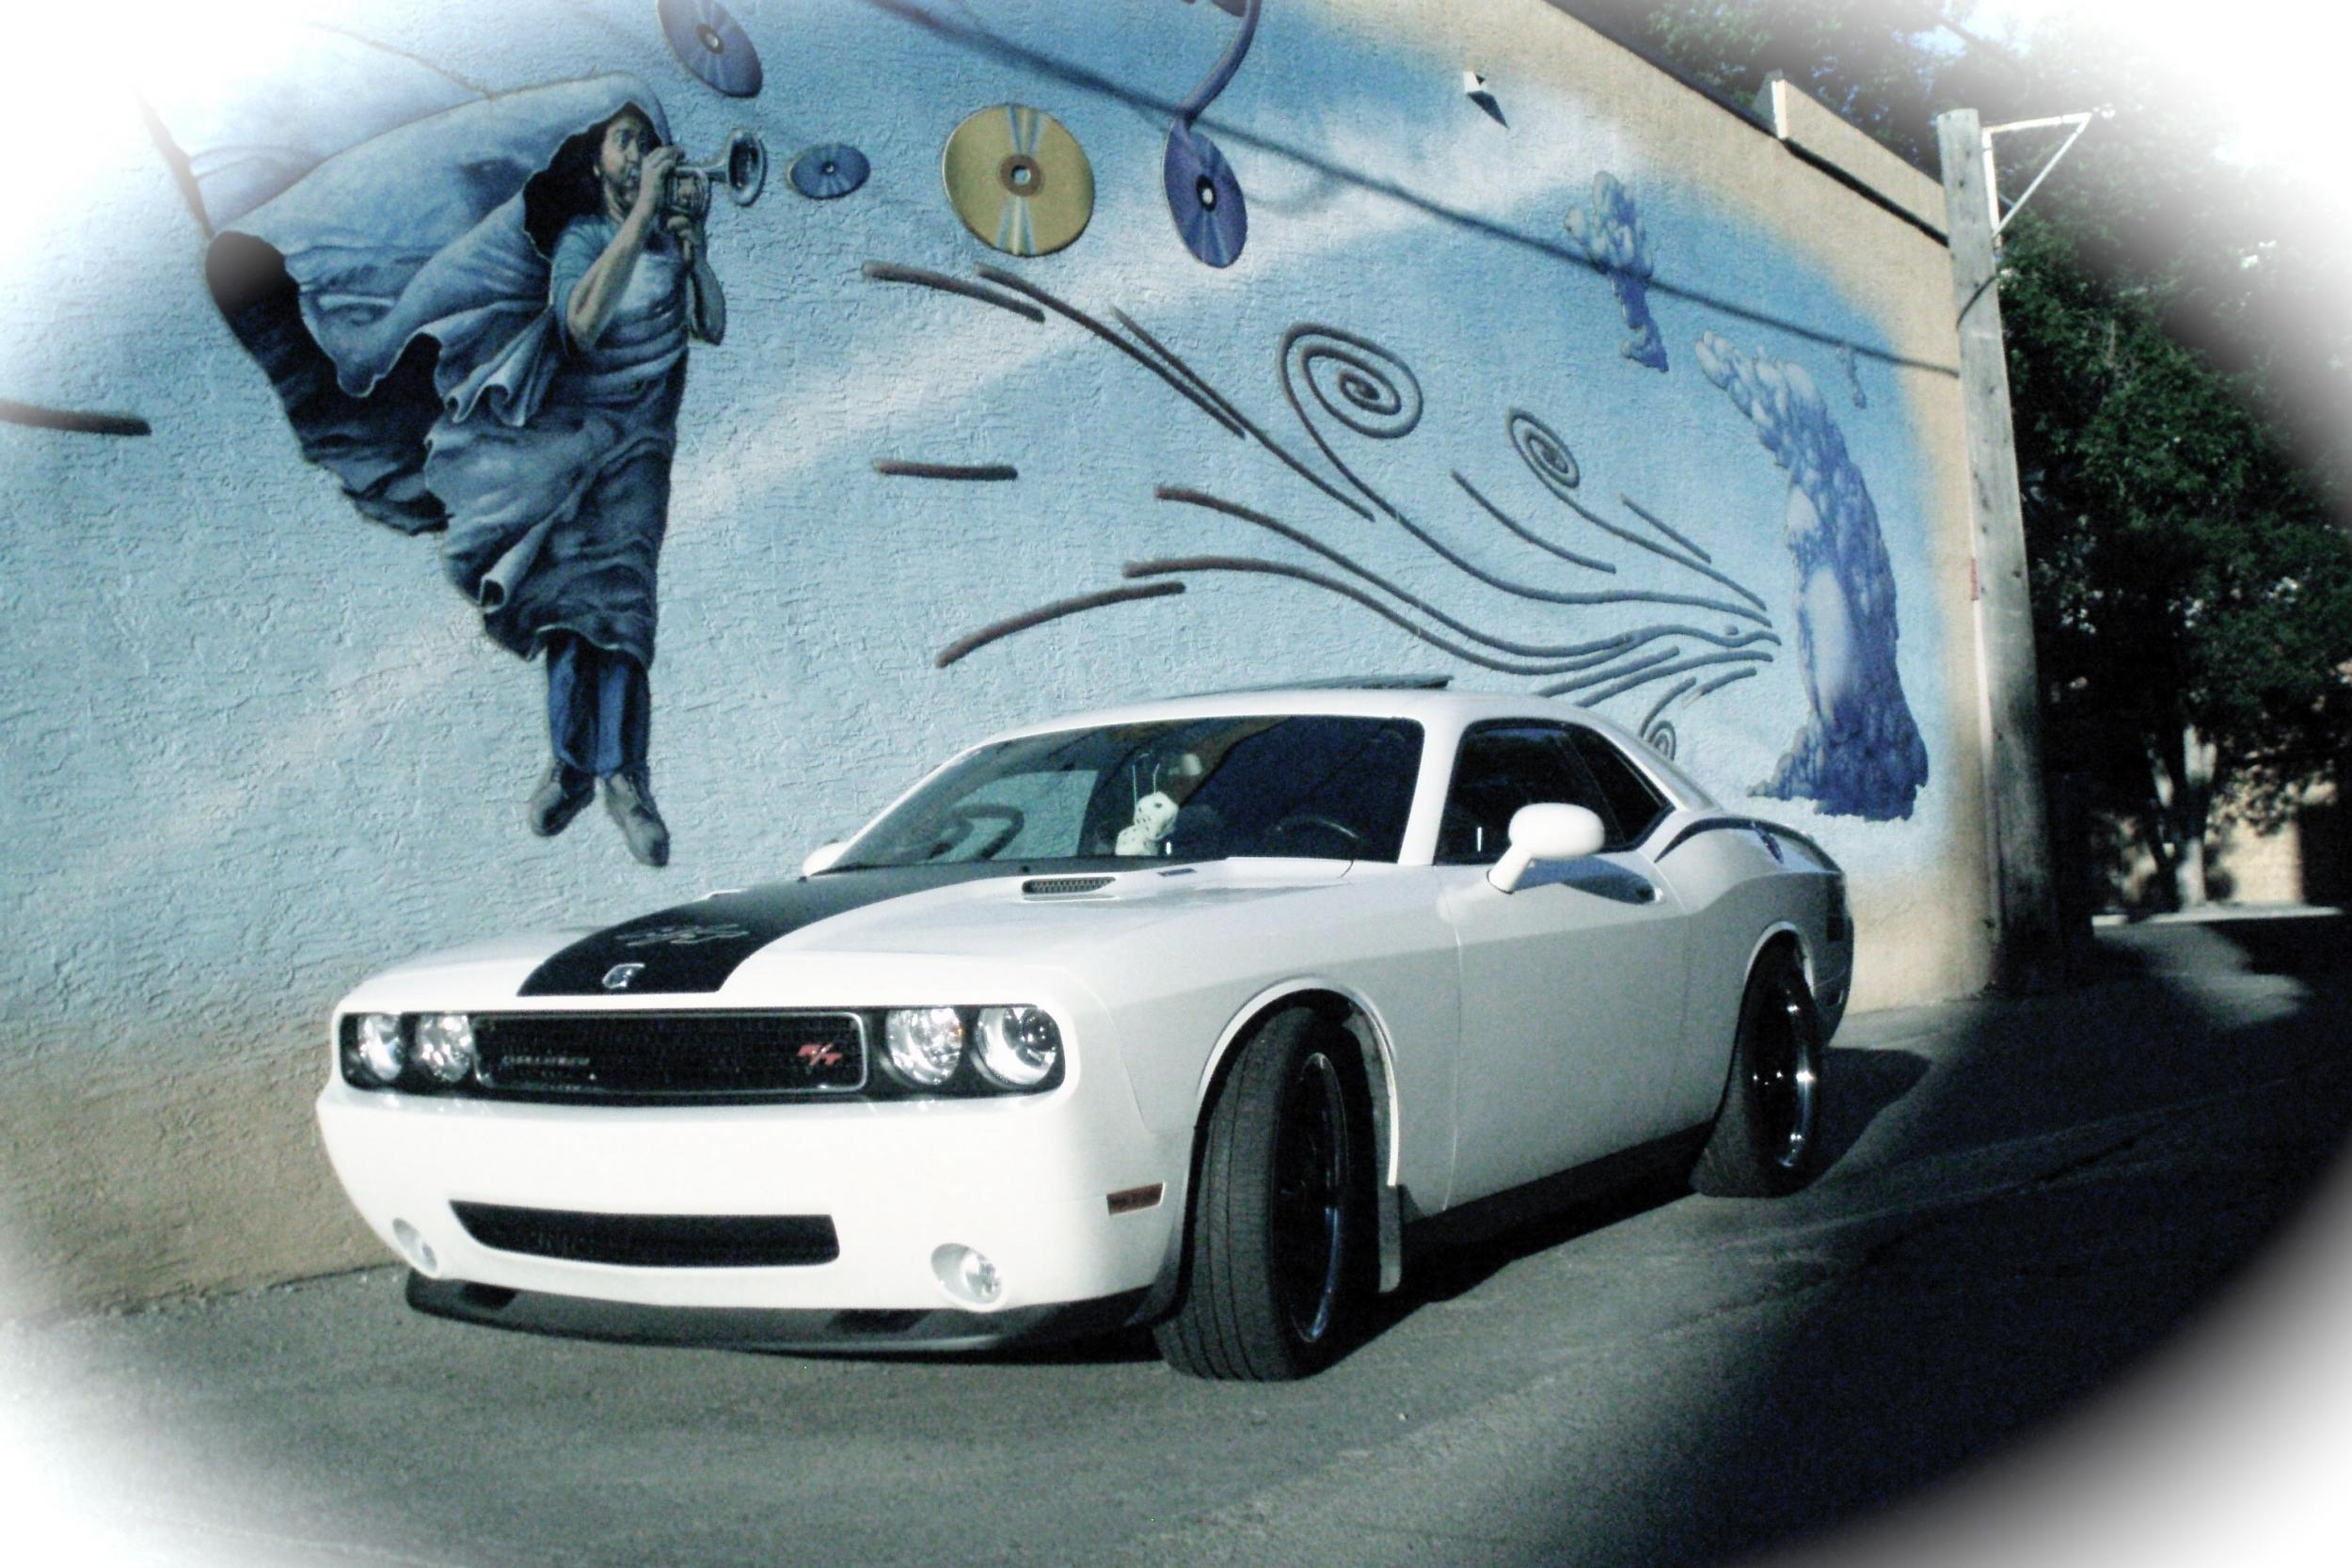 I want to see pics of white Challengers!-093_93.jpg